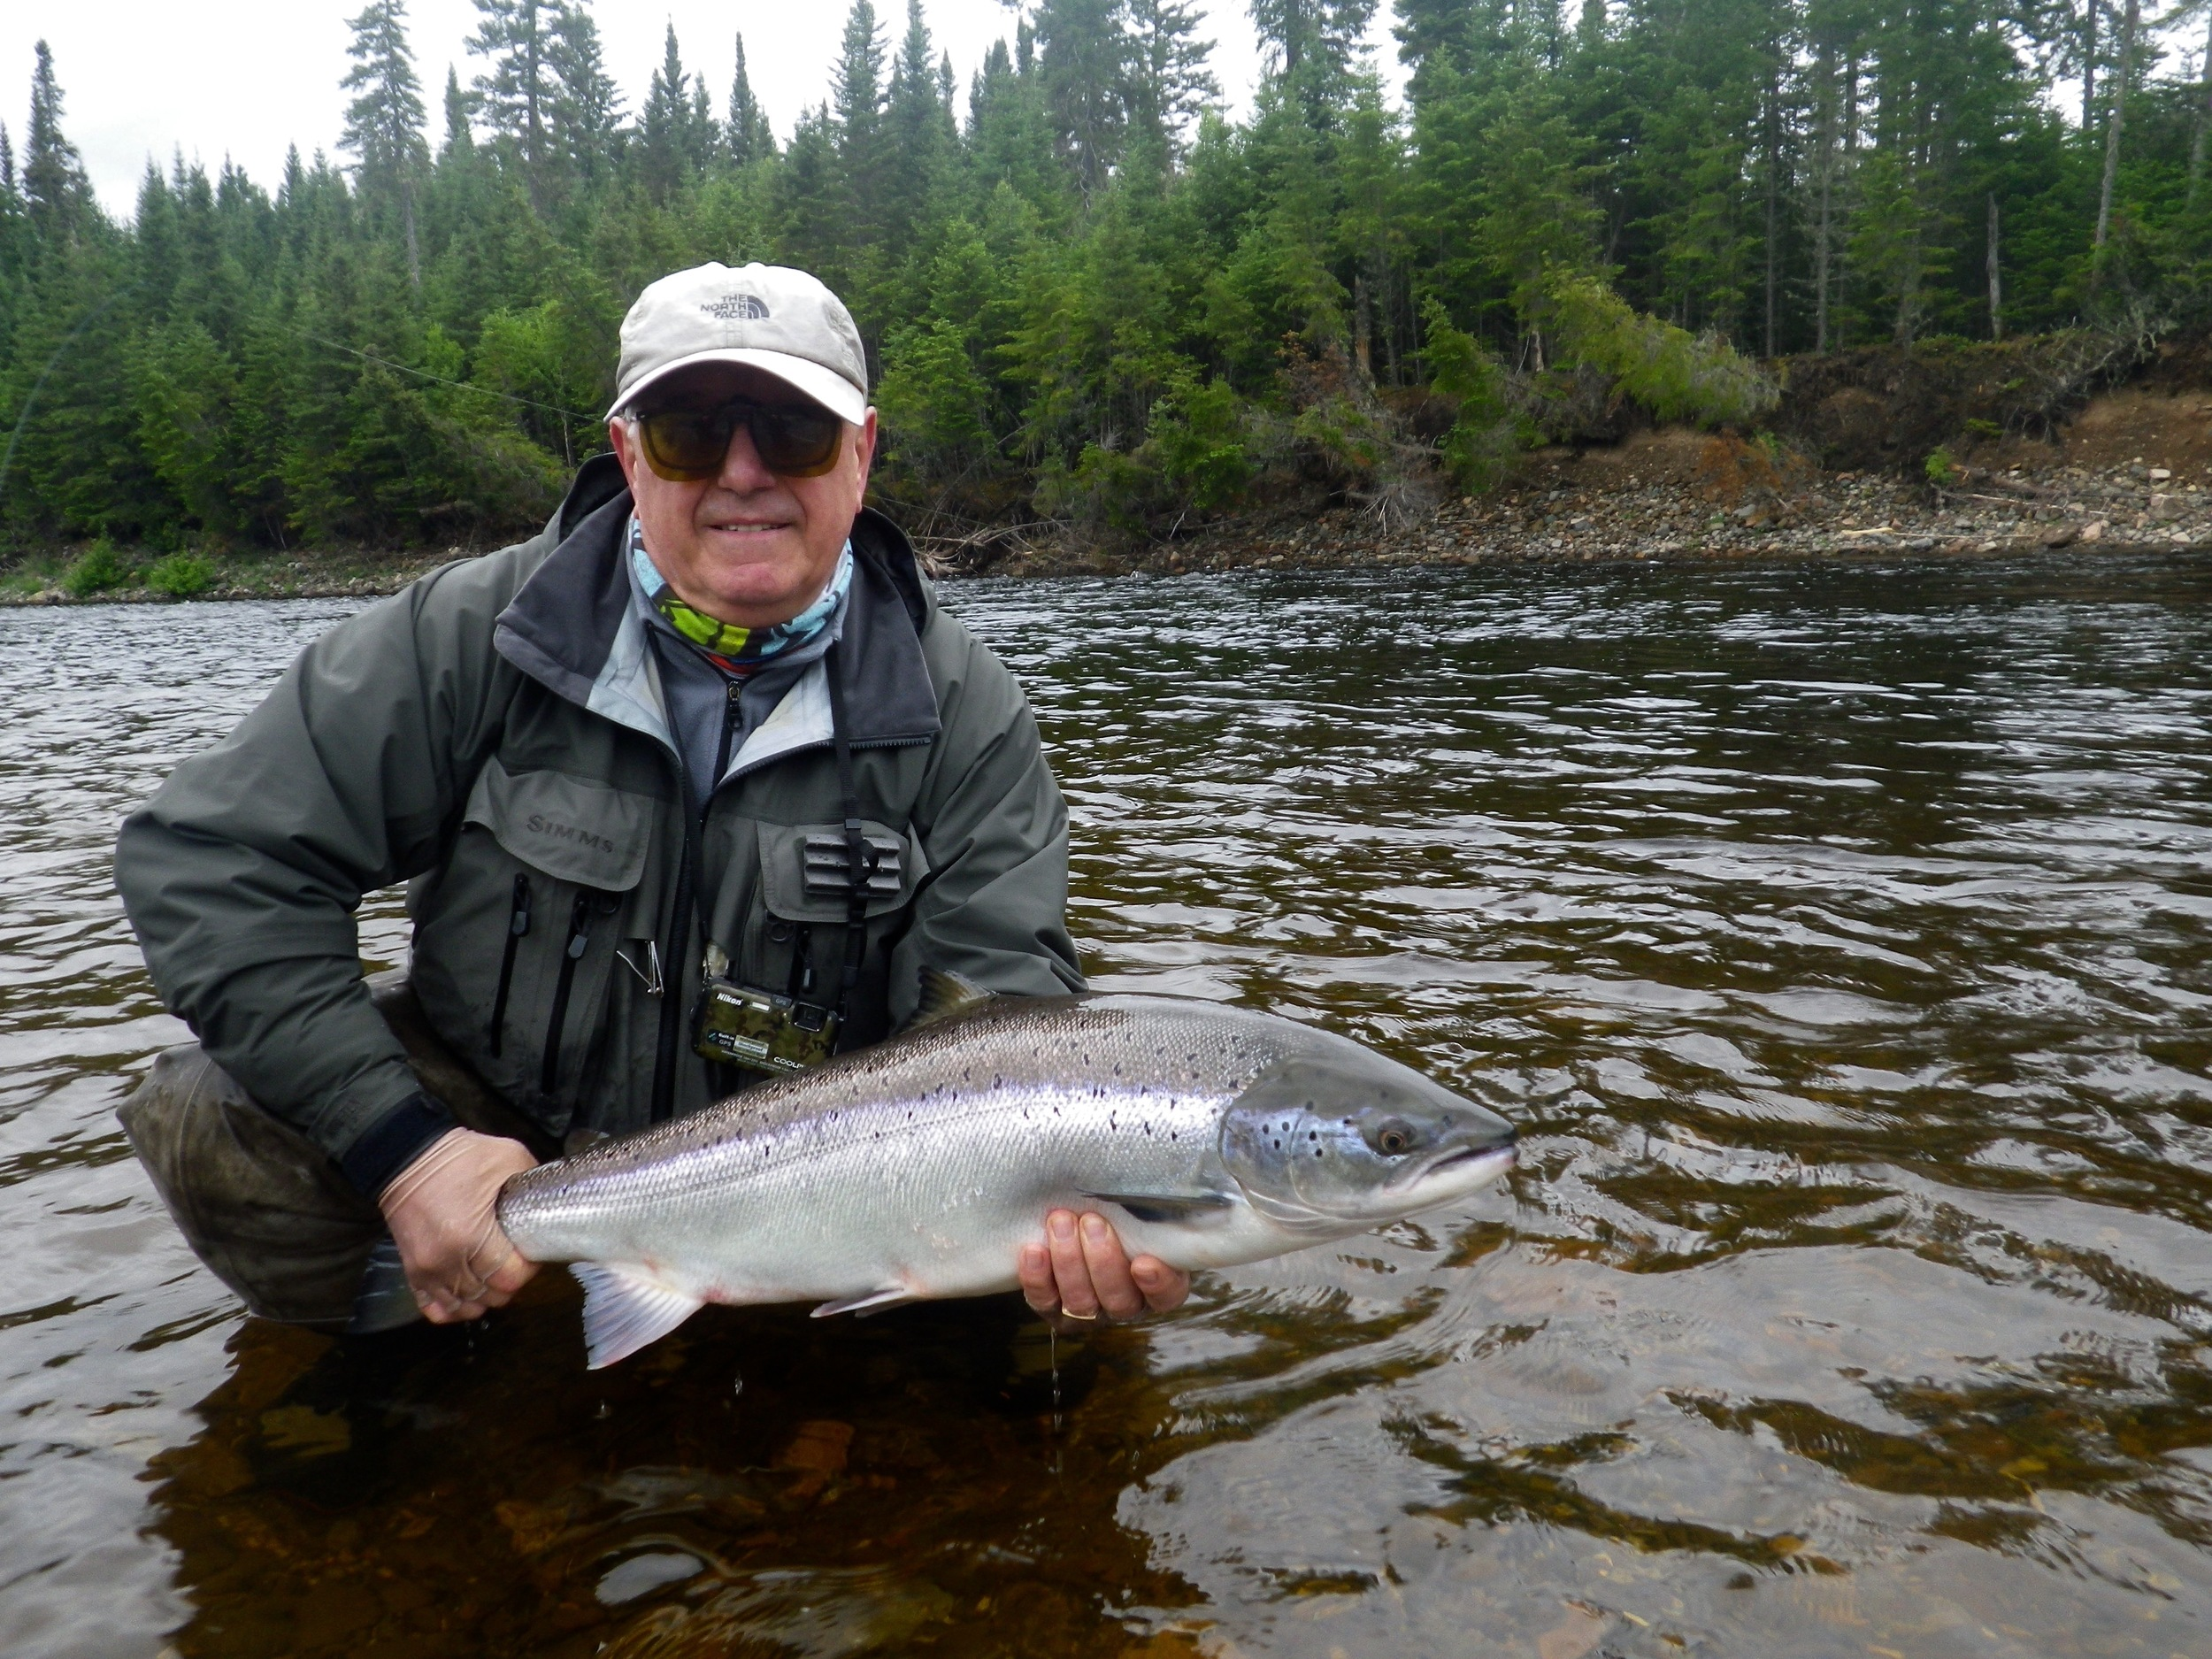 UK angler Eddie Di Biaggio with his first Atlantic Salmon from a Canadian river. Congratulations Eddie!